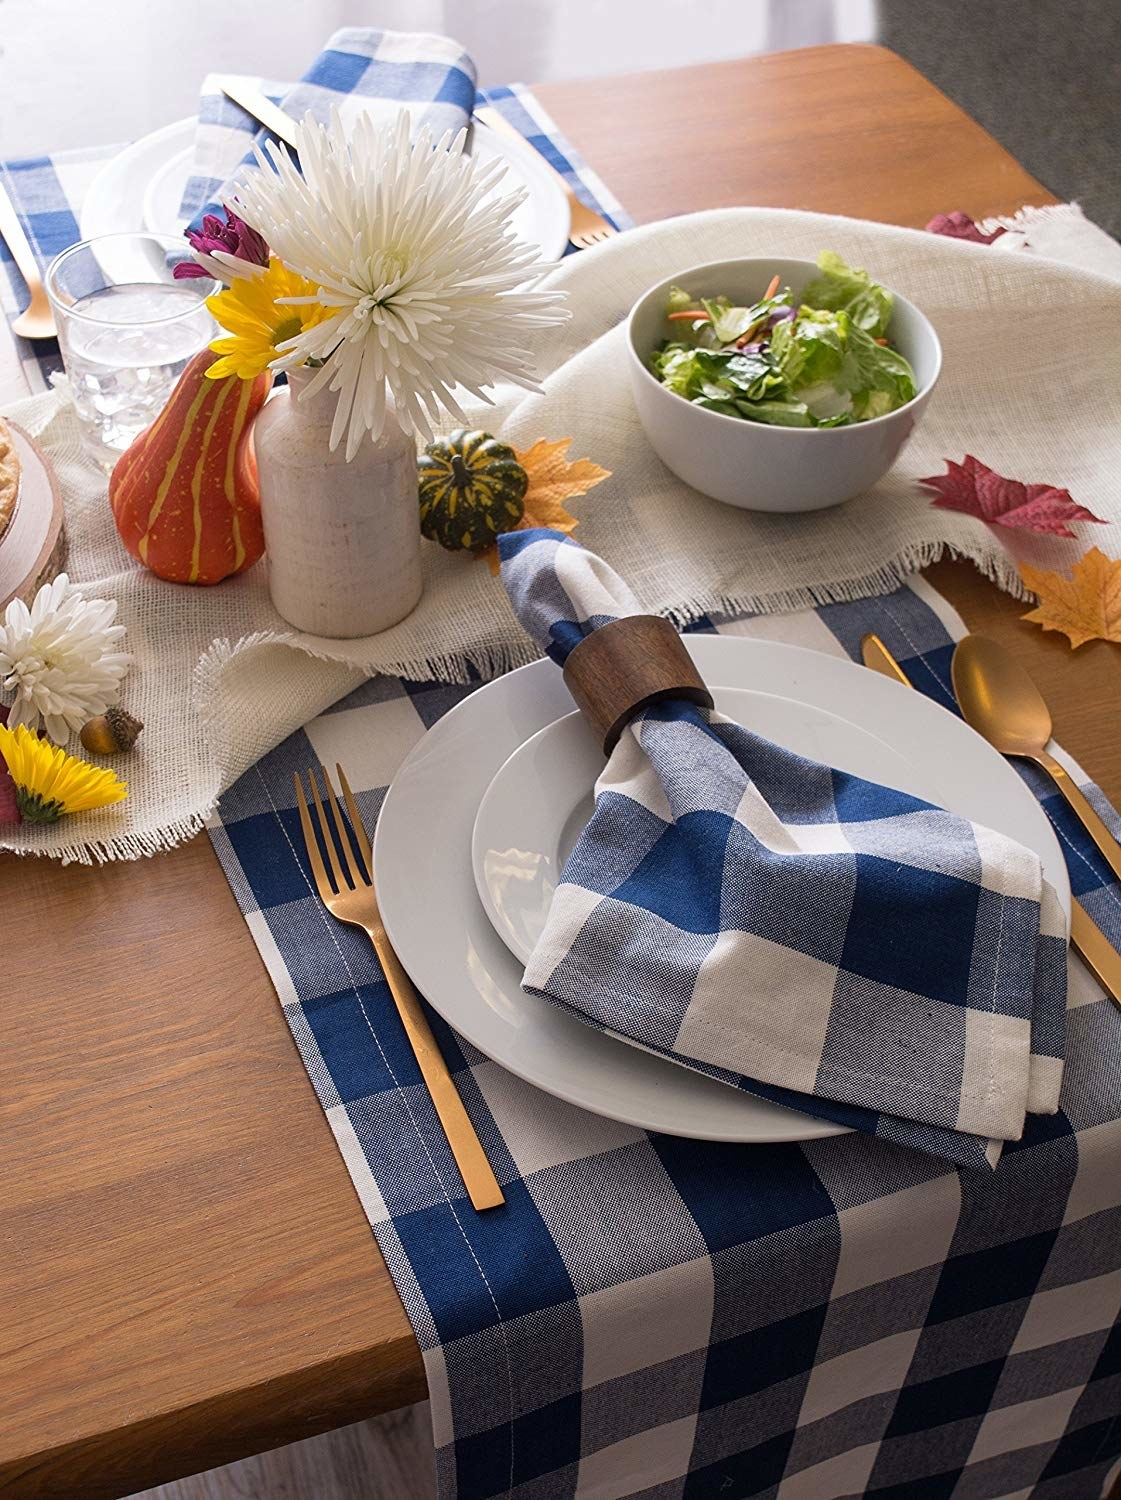 A table set with a wide gingham check table runner in navy and white